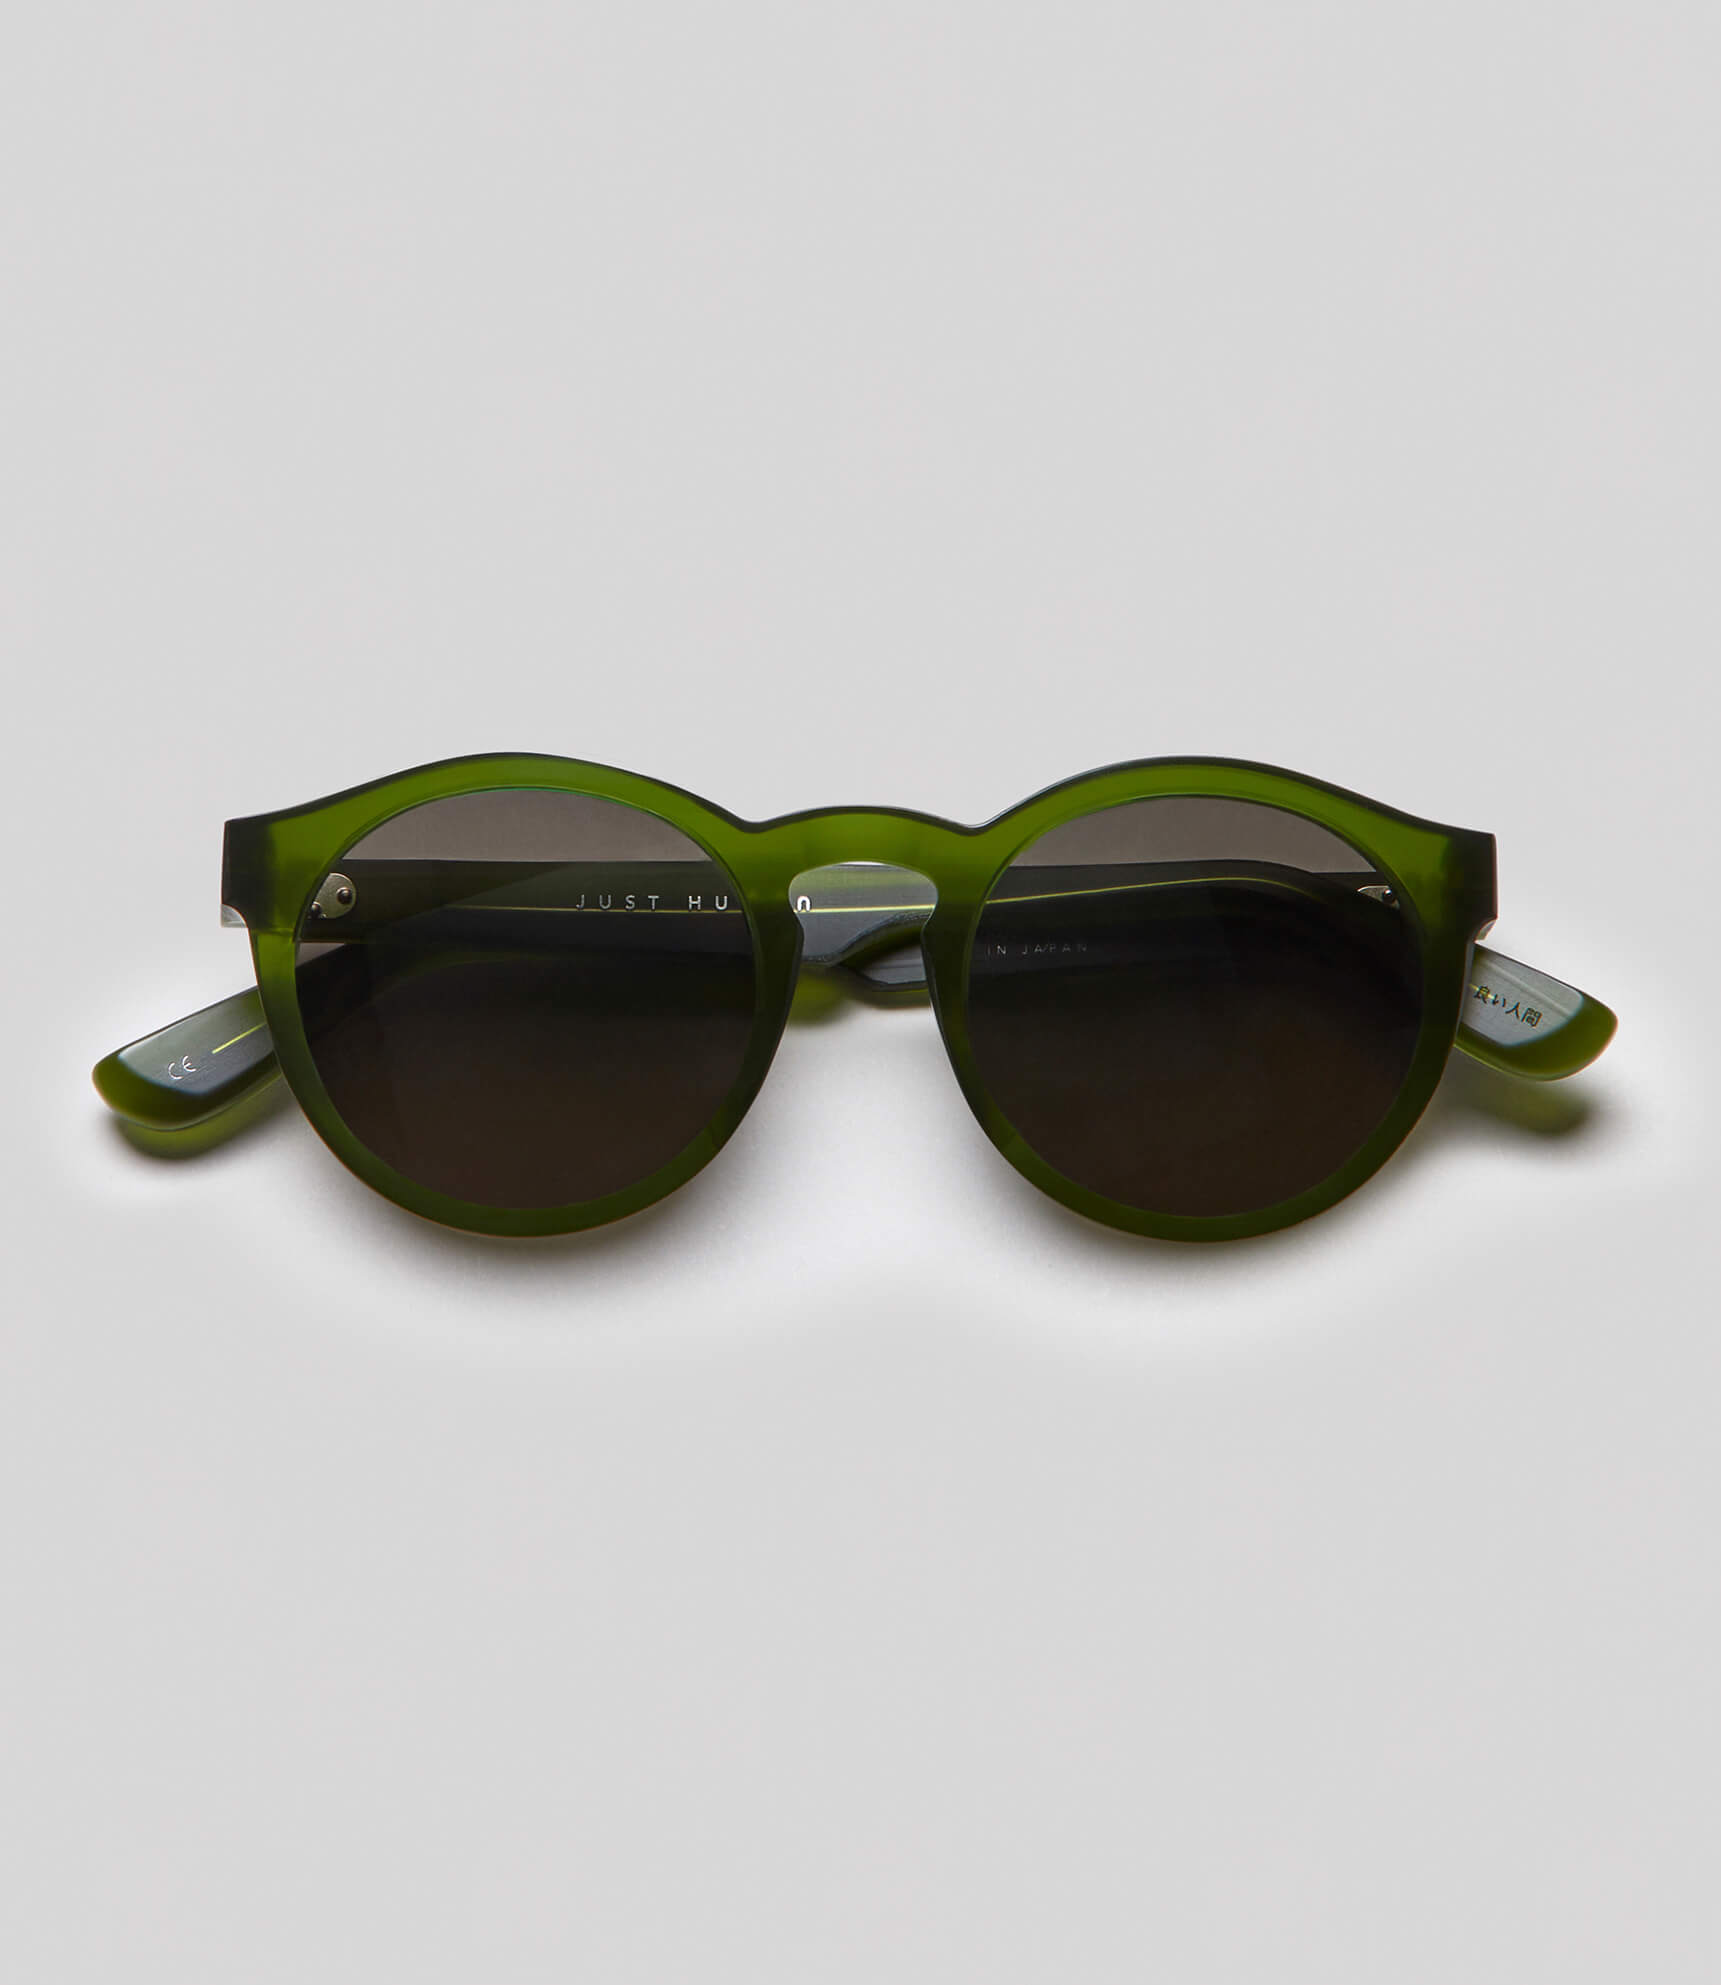 Round green sunglasses eco friendly sustainable fashion made in Japan unisex sunglasses for men sunglasses for women and blue light filter